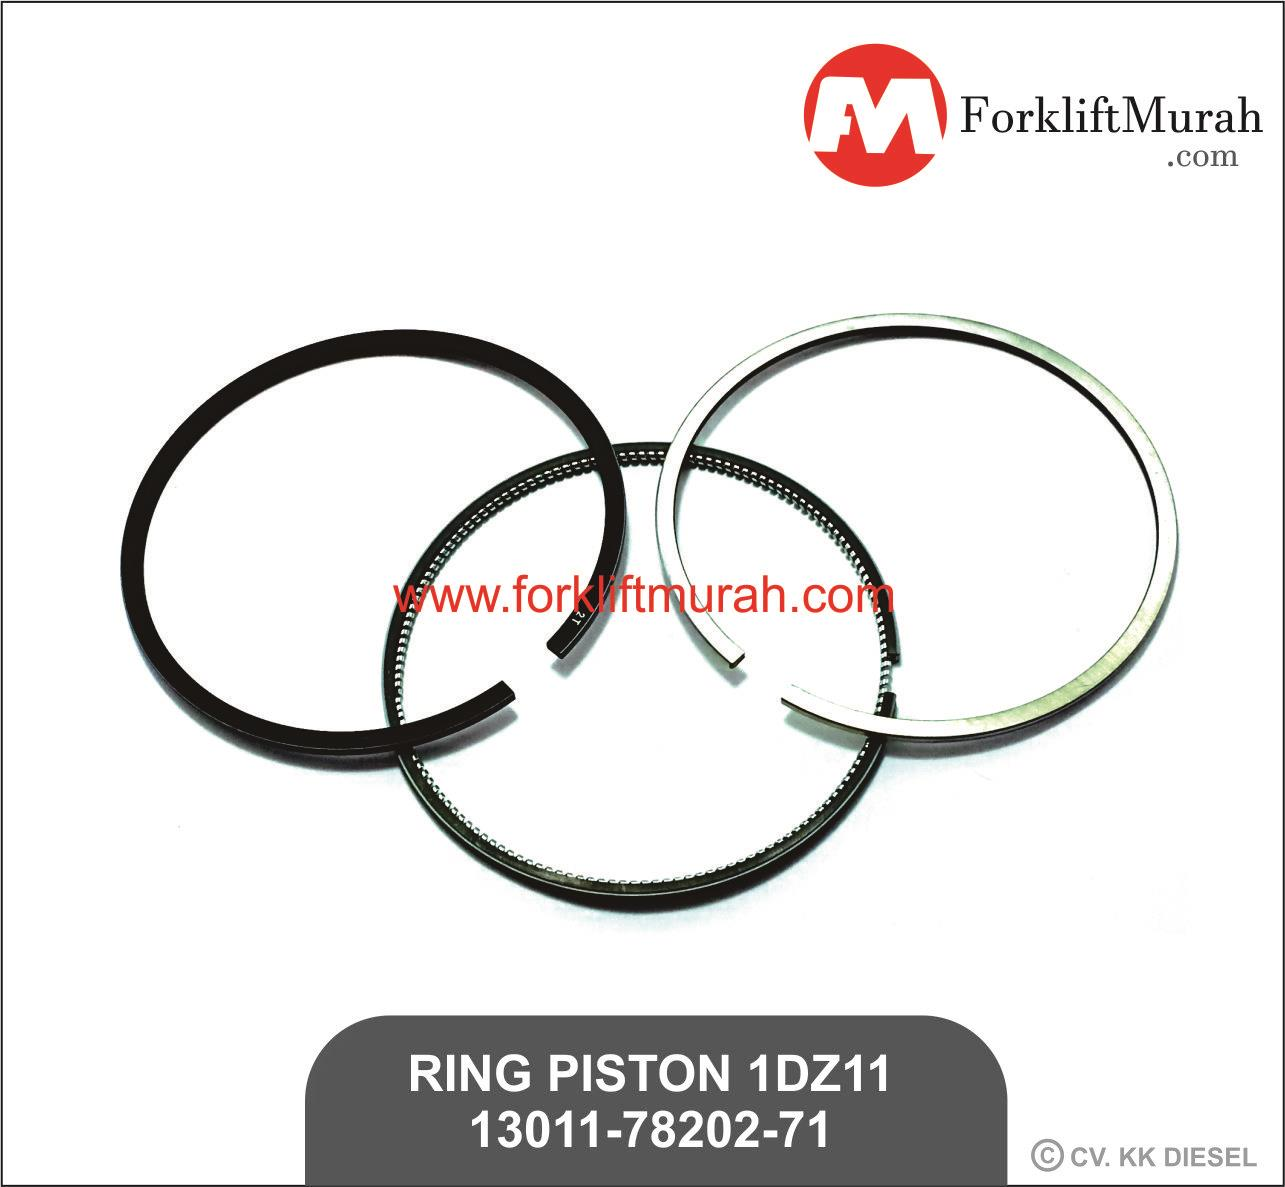 Jual Ring Piston 1dz11 Forklift Toyota Part No 13011 78202